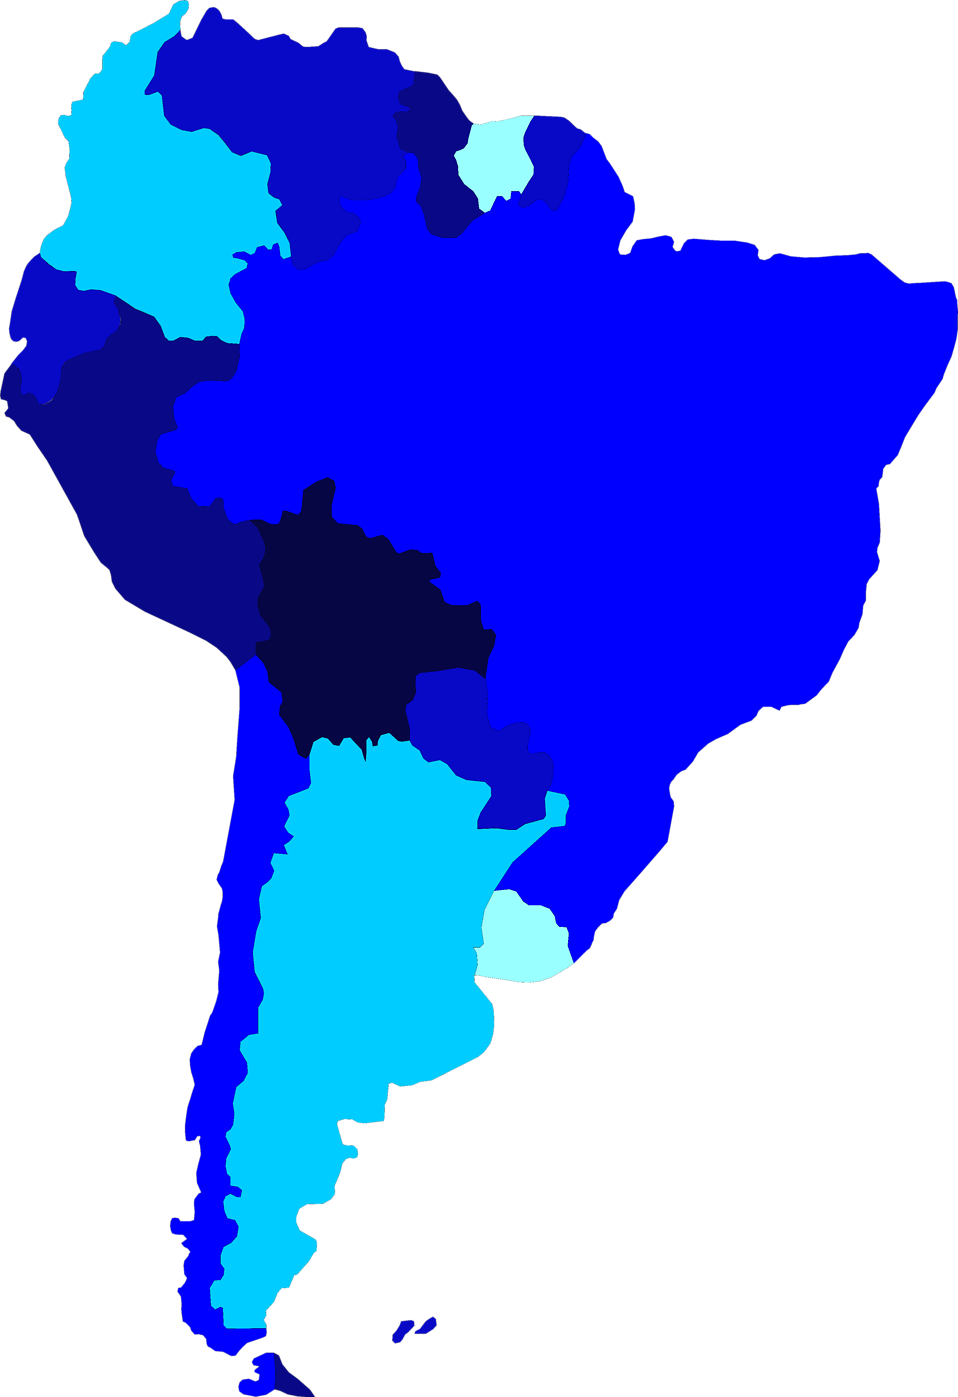 South america map png. Free stock photo illustrated